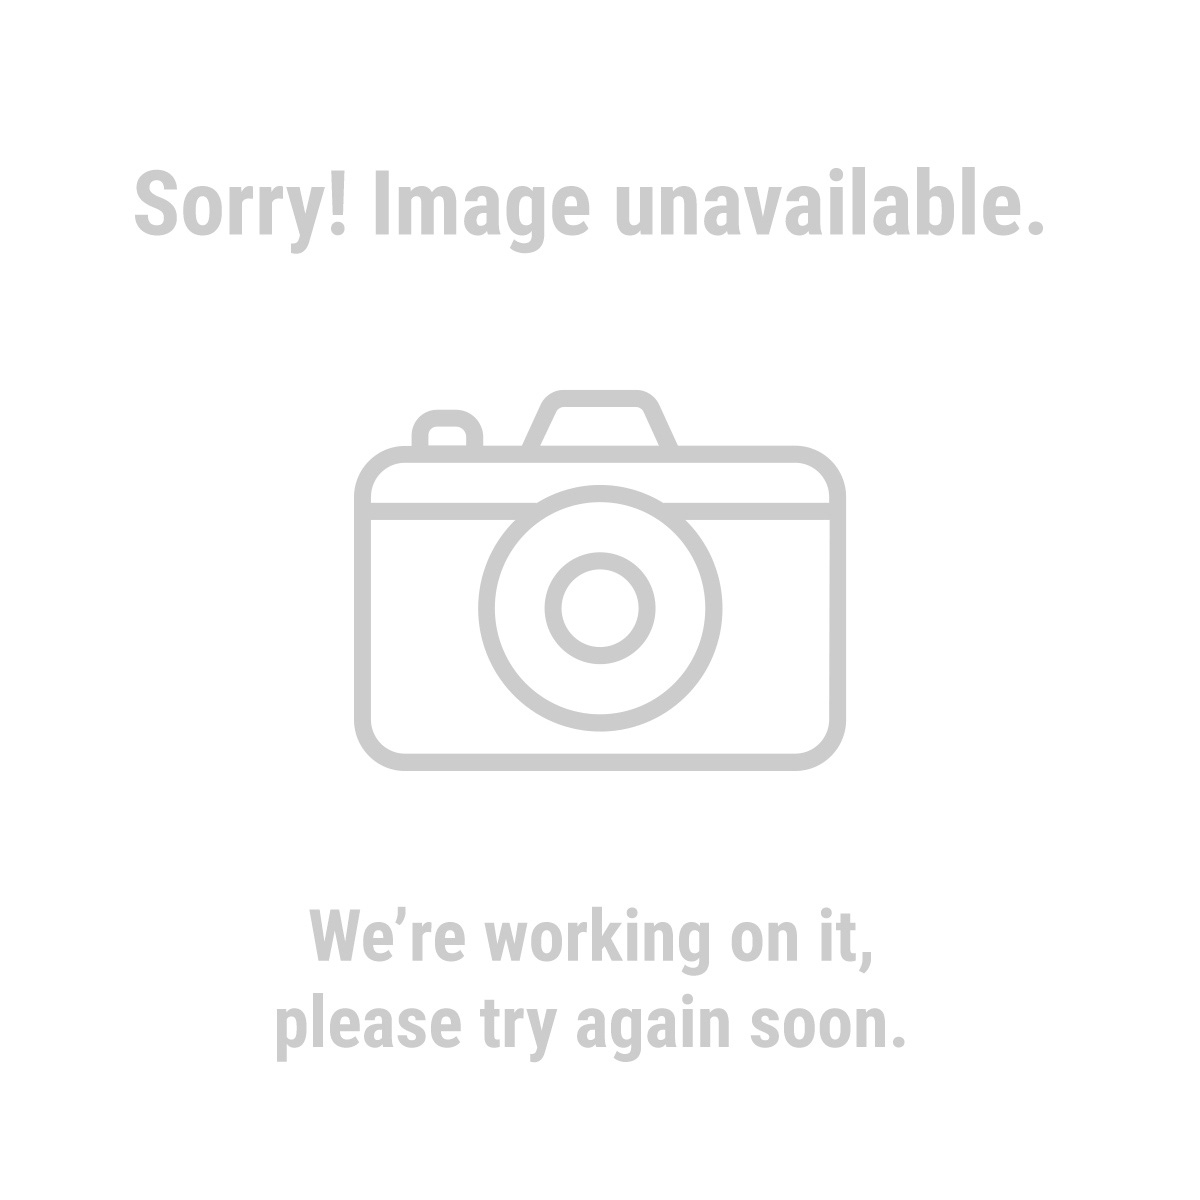 Greyhound® 62365 Towable Ride-On Trencher